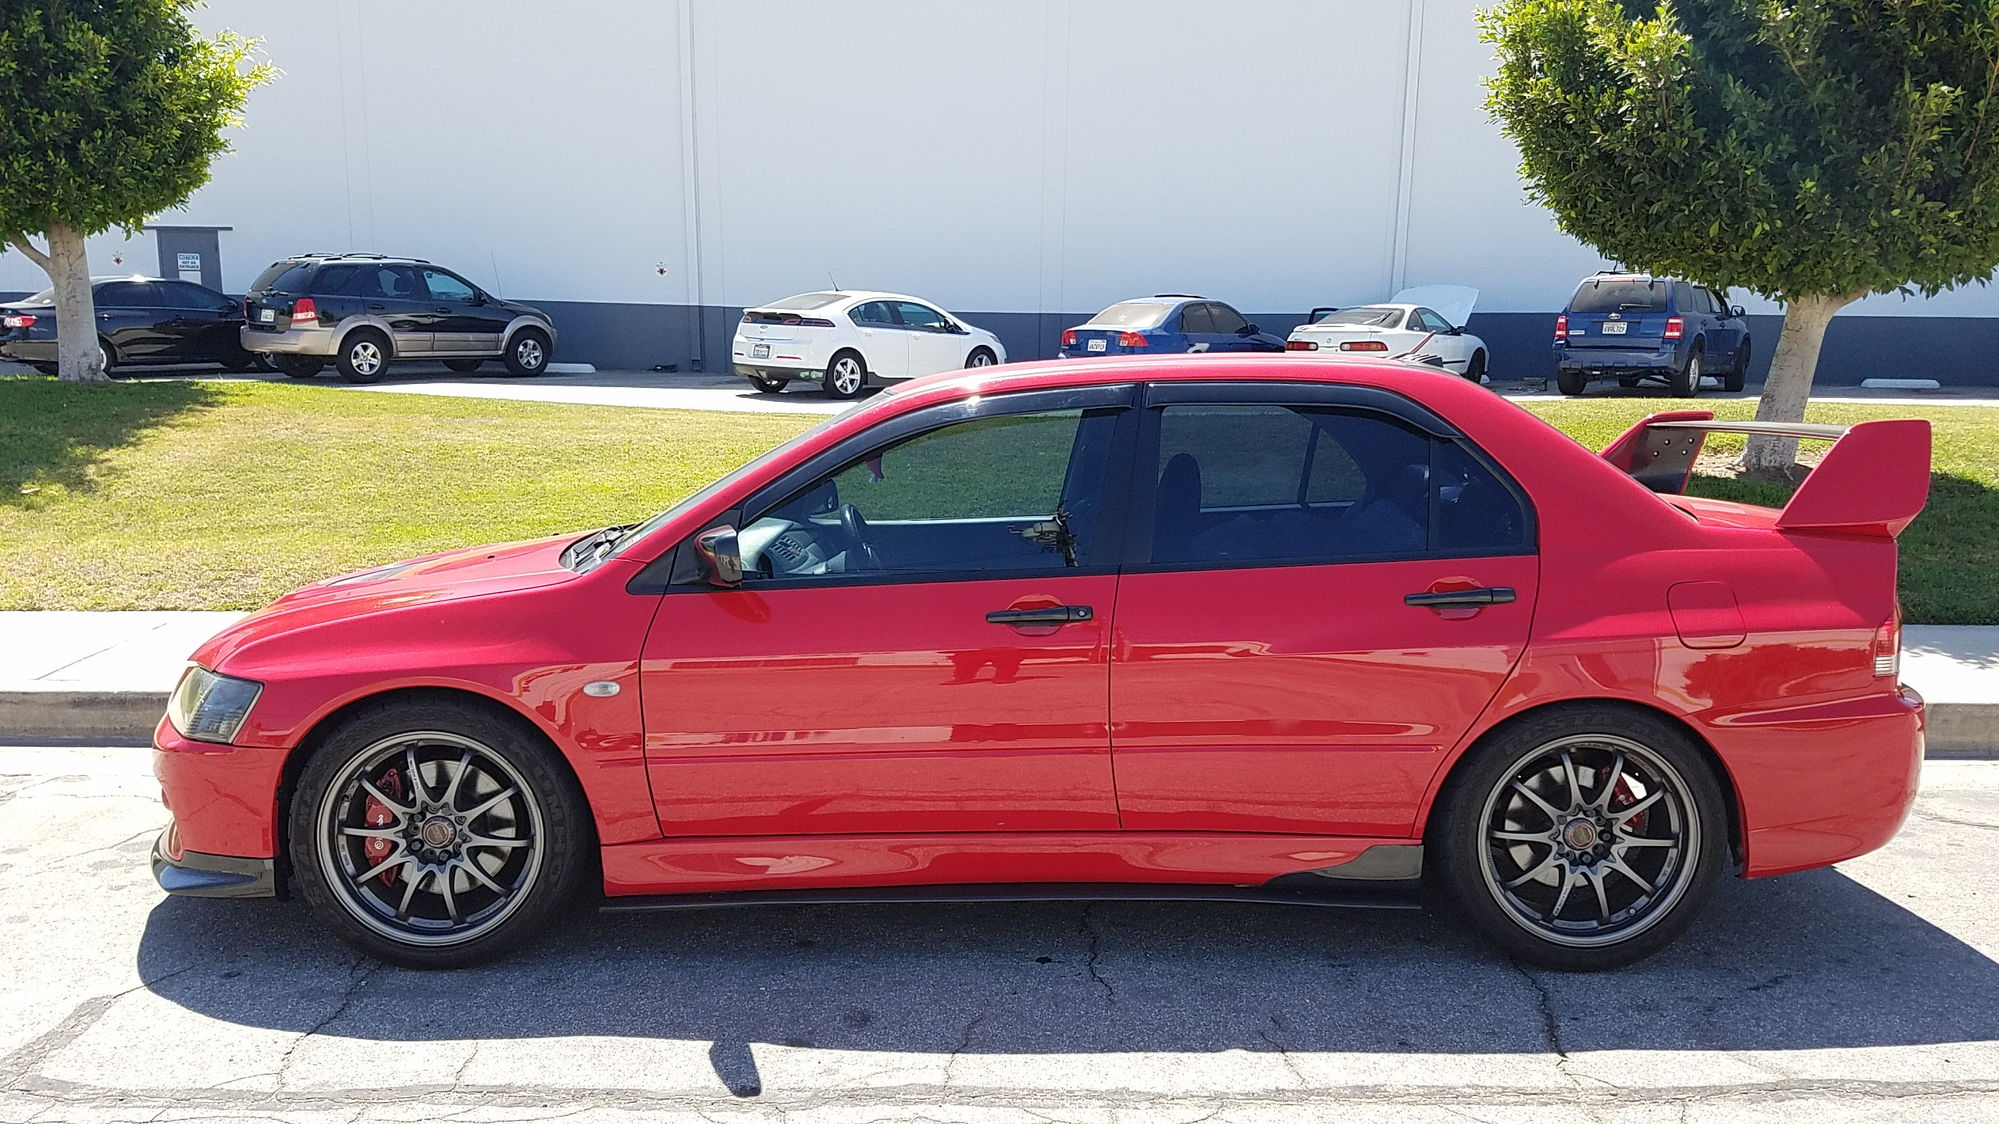 fs west ca 2006 mitsubishi lancer evolution 9 ix rr rs 1 of 358 60k miles socal. Black Bedroom Furniture Sets. Home Design Ideas